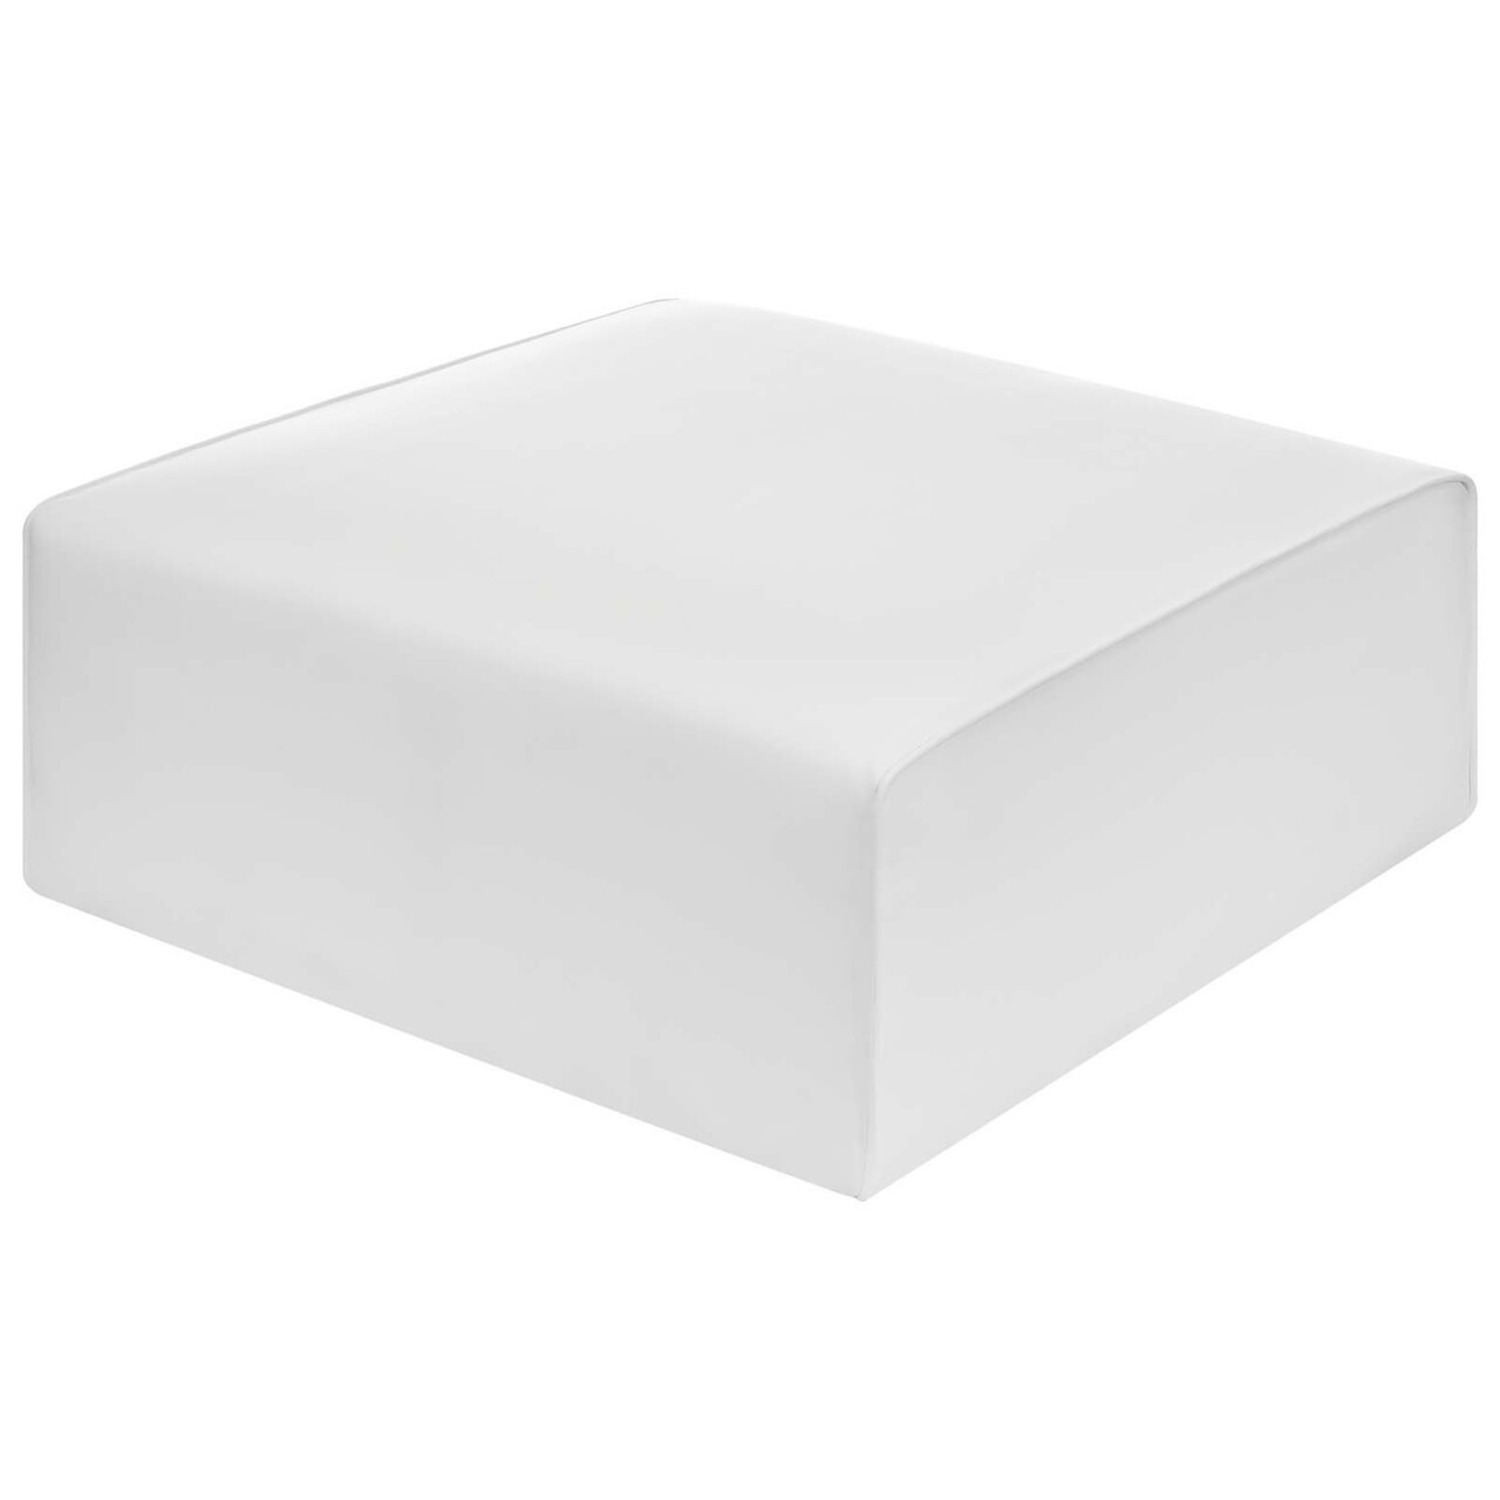 Ottoman In White Vegan Leather Upholstery - image-2